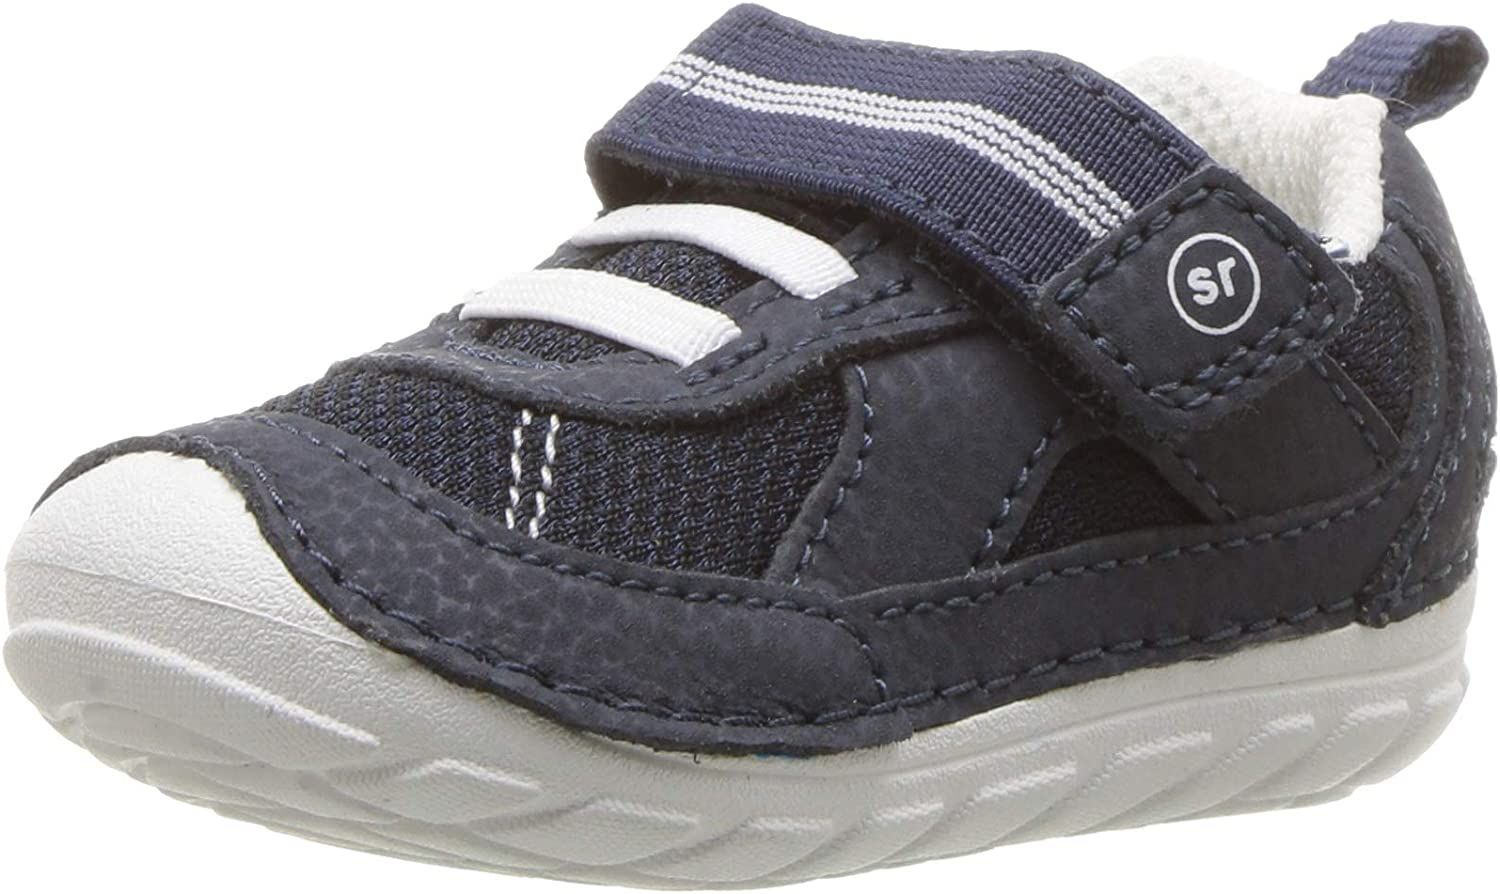 Stride RiteUnisex Kids' Soft Motion Jamie Sneaker